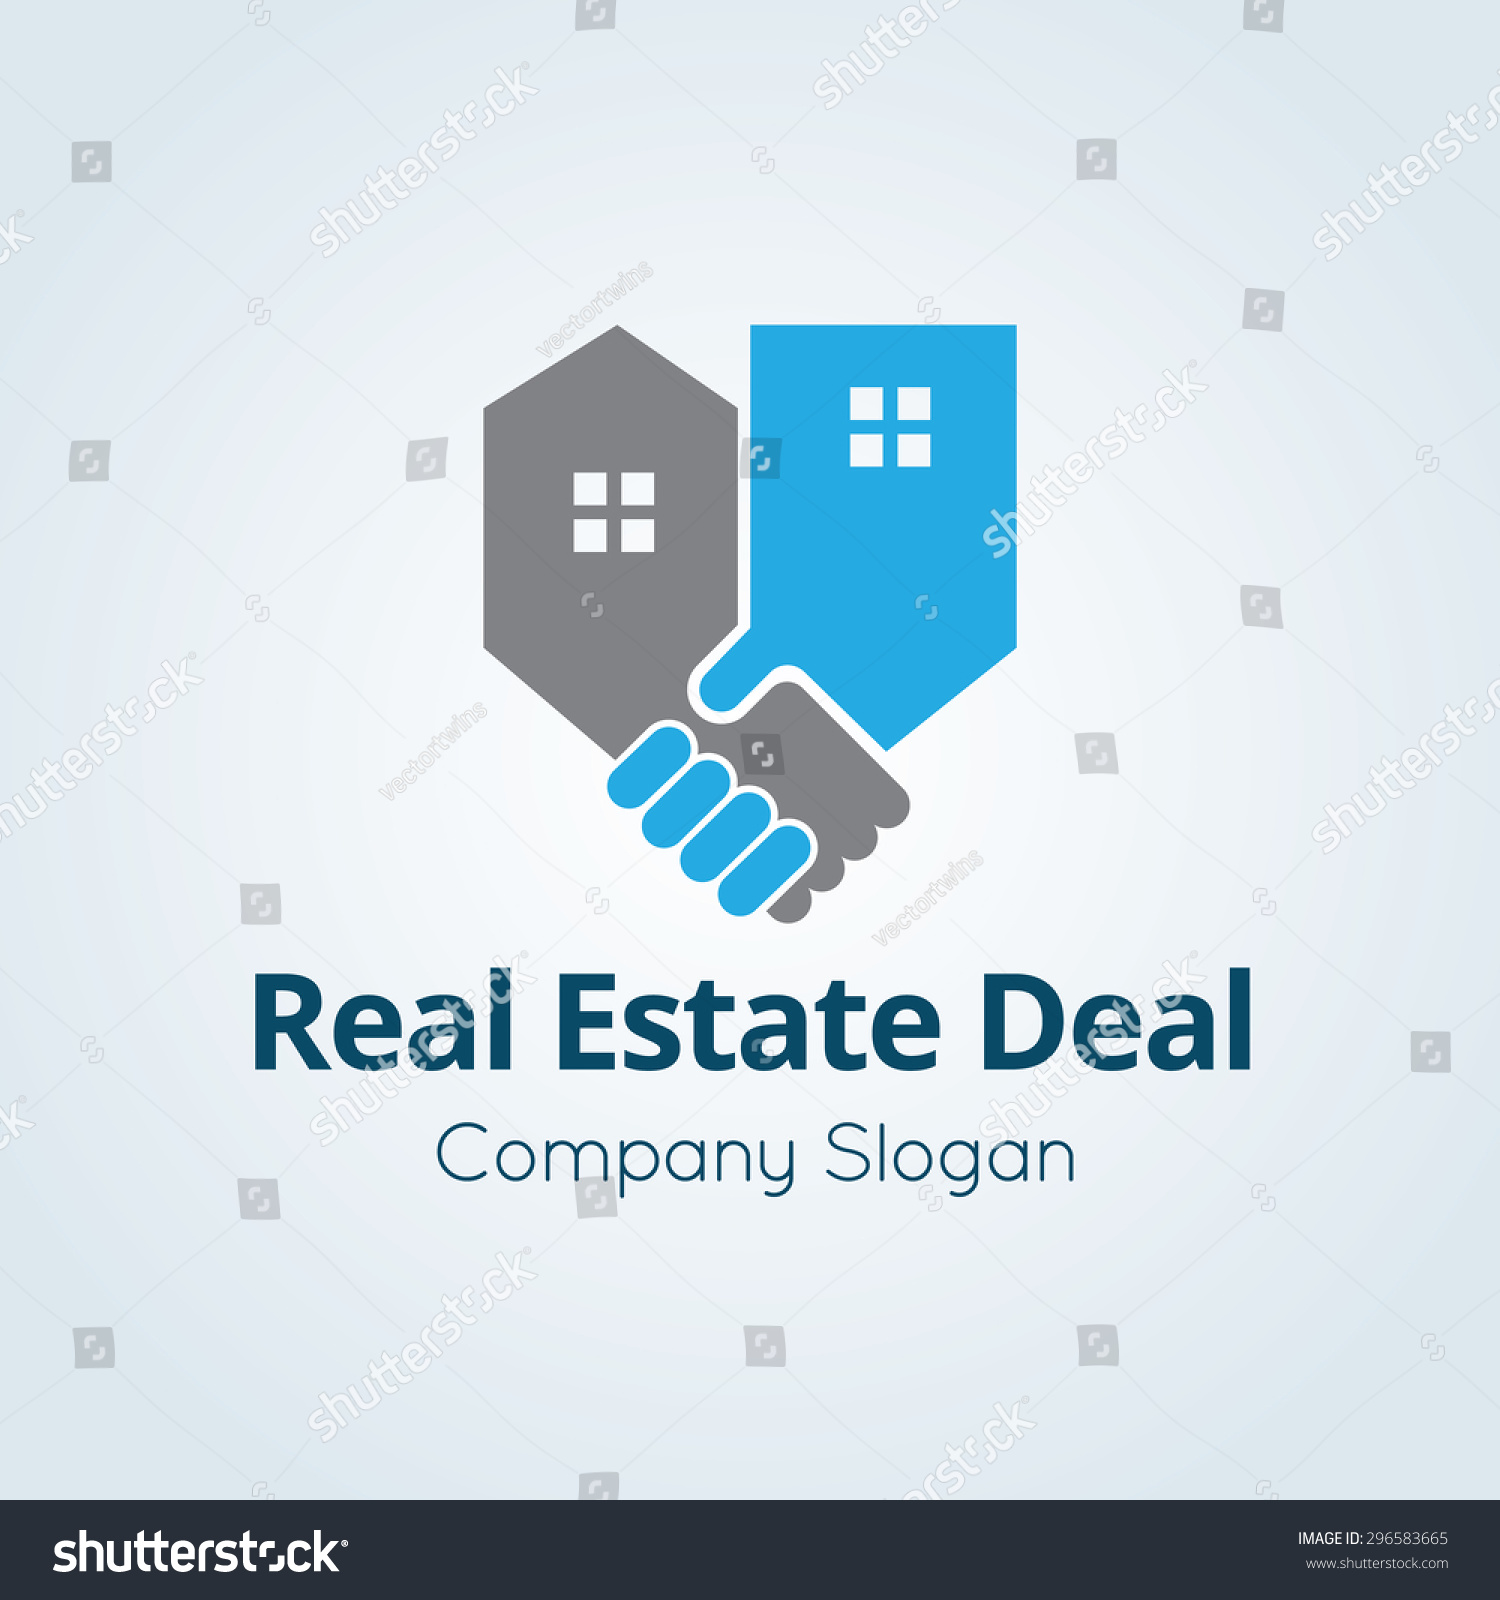 Real Estate Vector Logo Symbol - 296583665 : Shutterstock